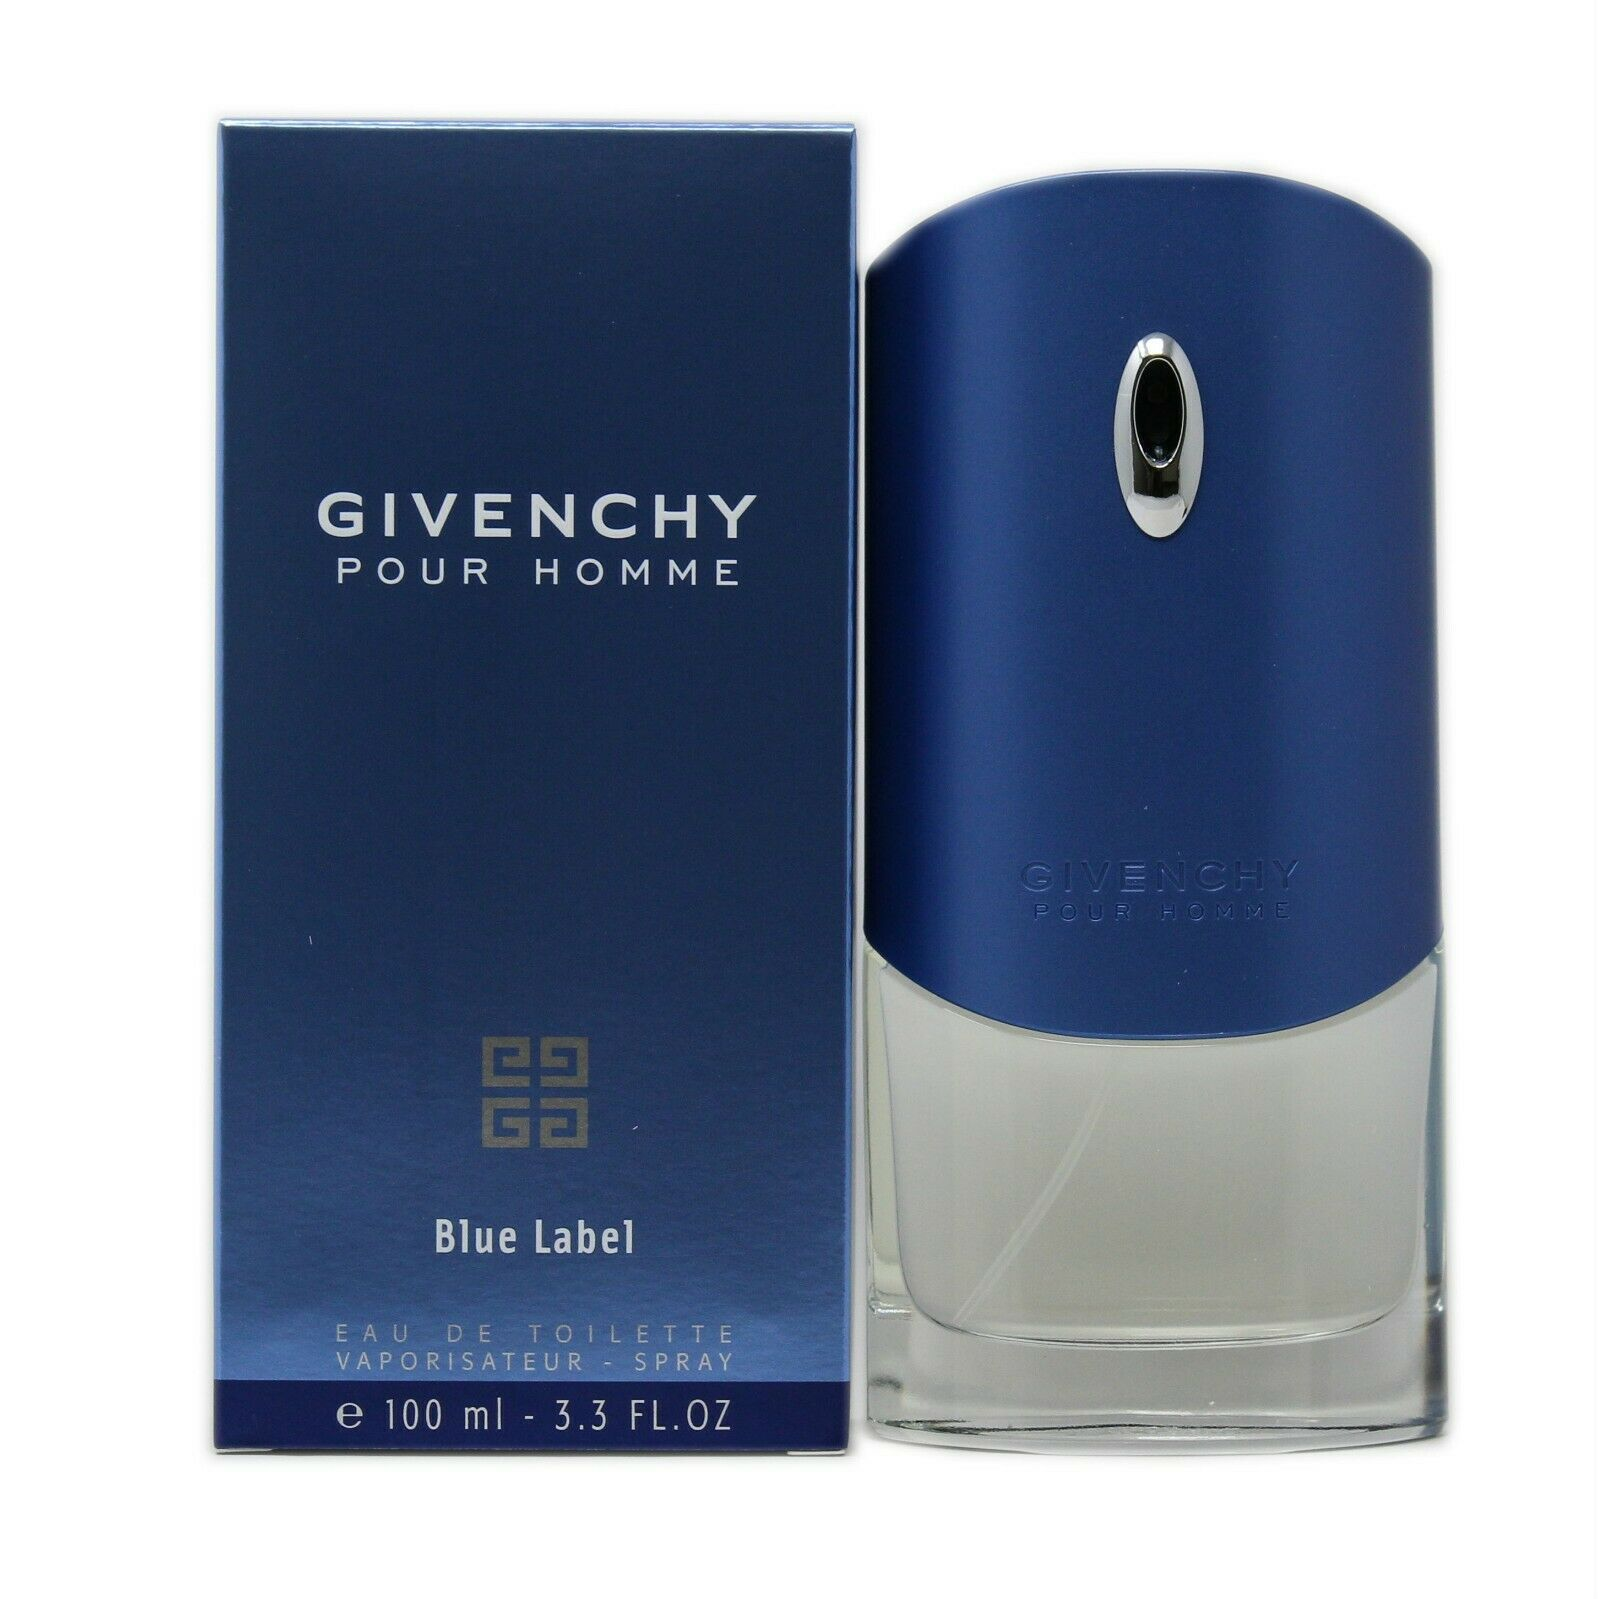 Primary image for GIVENCHY POUR HOMME BLUE LABEL EAU DE TOILETTE SPRAY 100 ML/3.3 FL.OZ. NIB